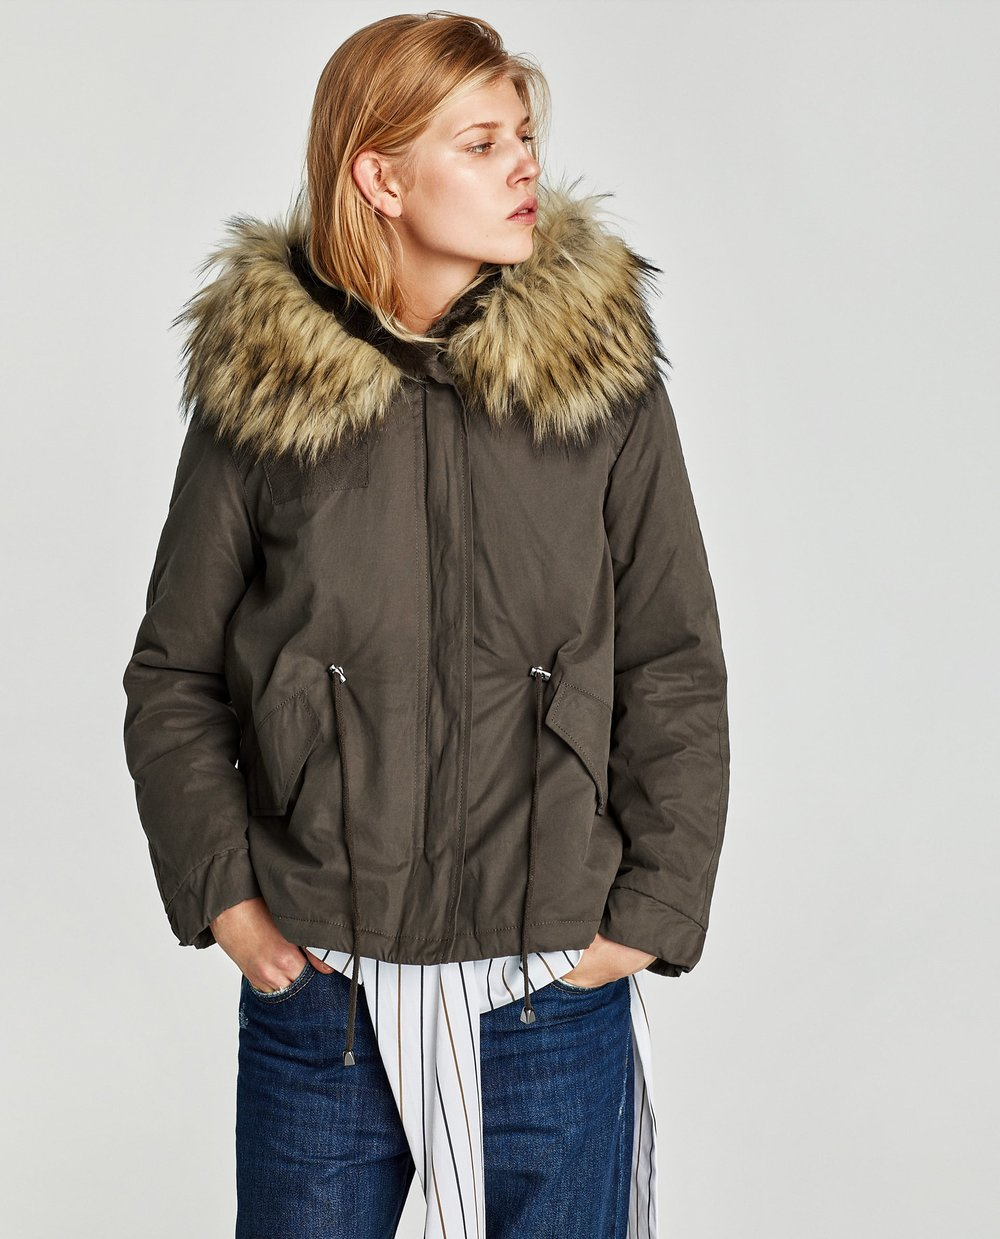 - PARKA WITH FAUX FUR HOOD / SALE PRICE $80